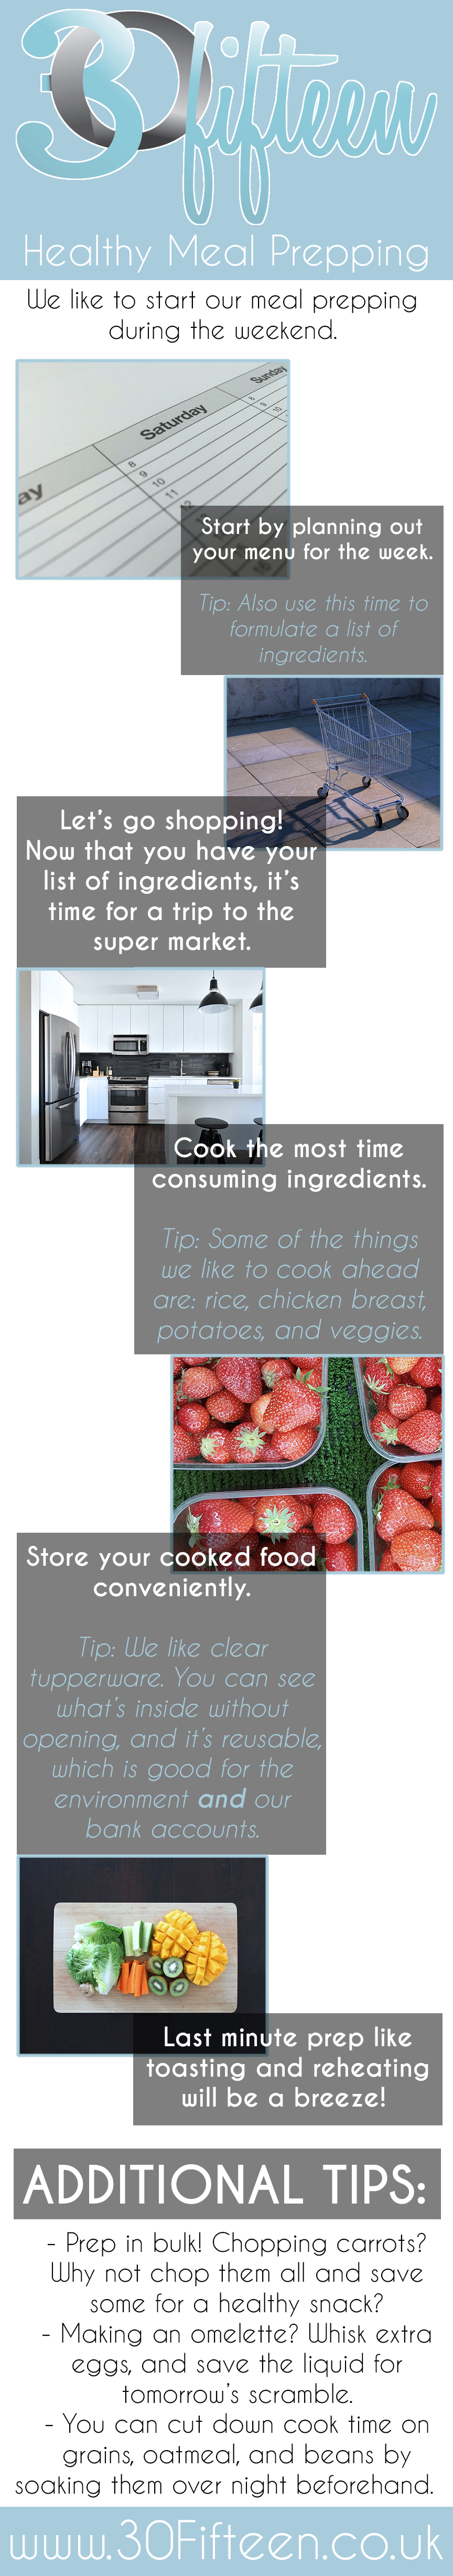 Meal prepping infographic 30Fifteen